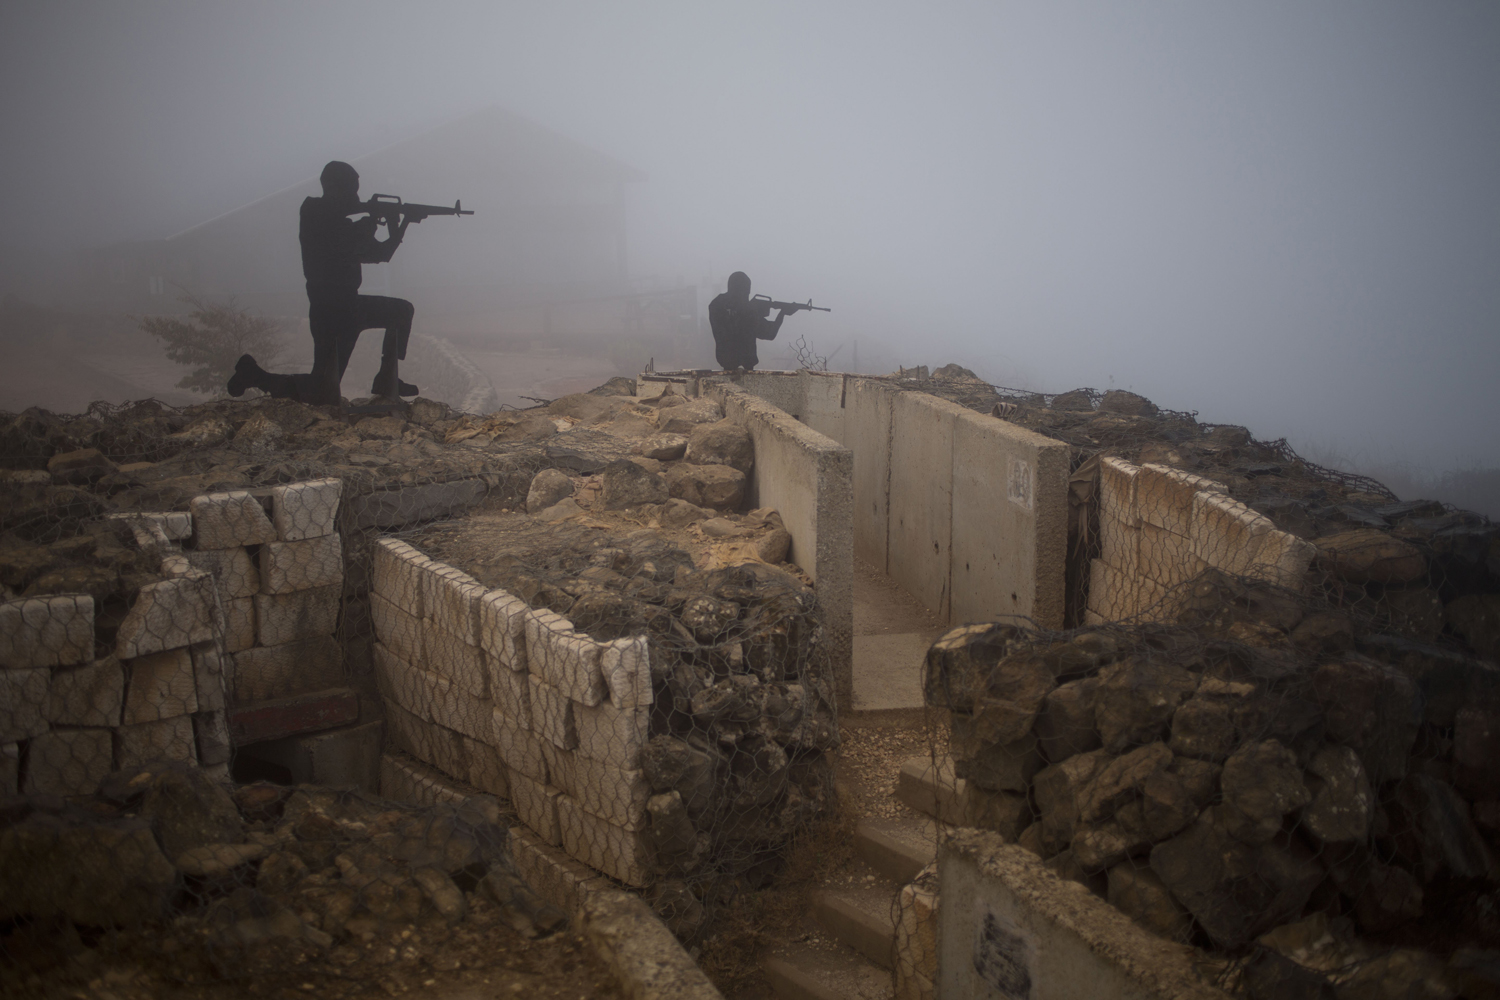 Aug. 29, 2014. Metal boards in the shape of gunmen sit on an old bunker at an observation point on Mt. Bental in the Israeli controlled Golan Heights, overlooking the border with Syria near the Quneitra province.